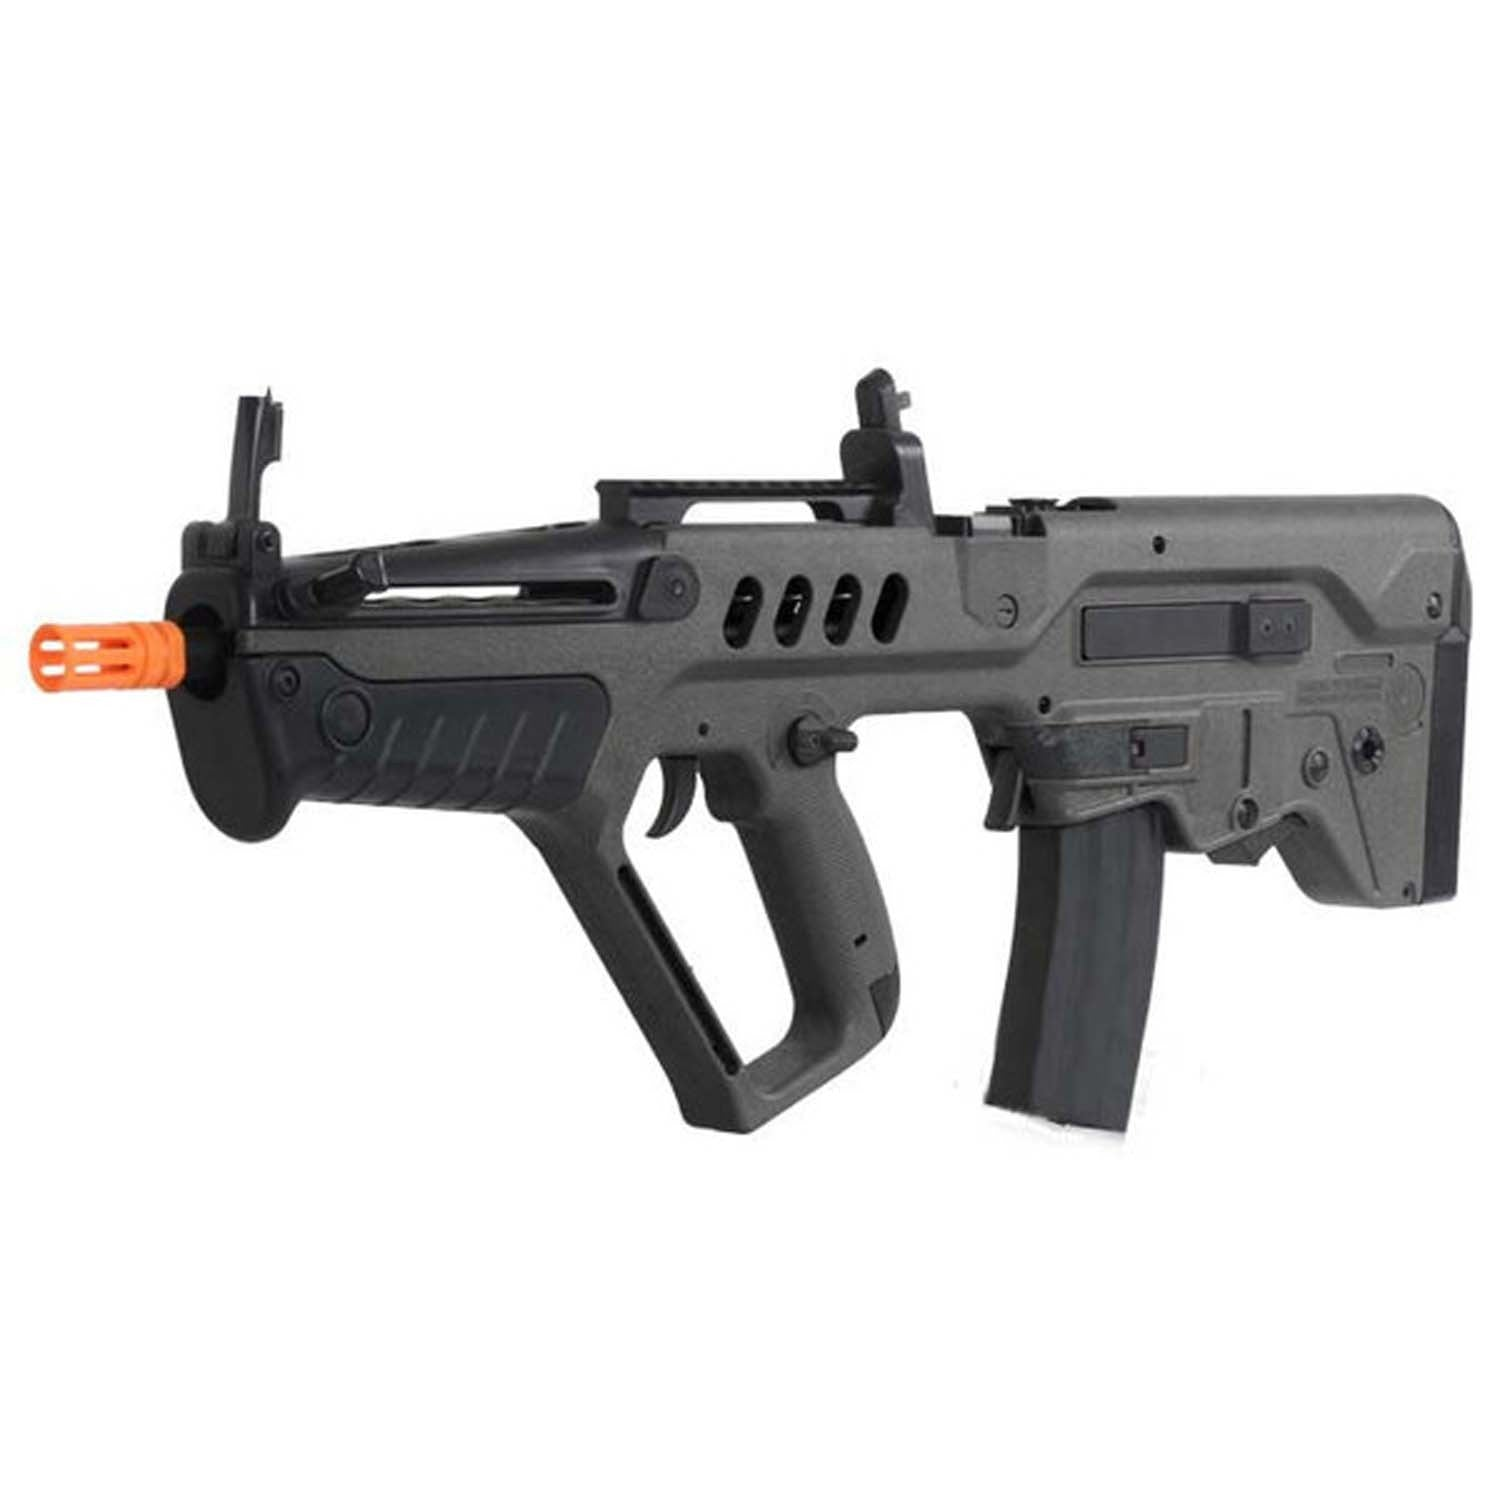 Full Metal Gearbox Tavor TAR-21 AEG Advanced Tactical Rifle - Polymer Exterior Metal Barrel Assembly 330-350 FPS 12-13 RPS 8.4 V. Rechargeable Battery & Wall Charger Included 380 Rd. High Cap Magazine Included Metal Internal Gearbox Quick Spring Change Ability Battery Located in the Front Hand Guard Flip Up Front & Rear Sight Top Rail for Optics Ambidextrous Mag Release